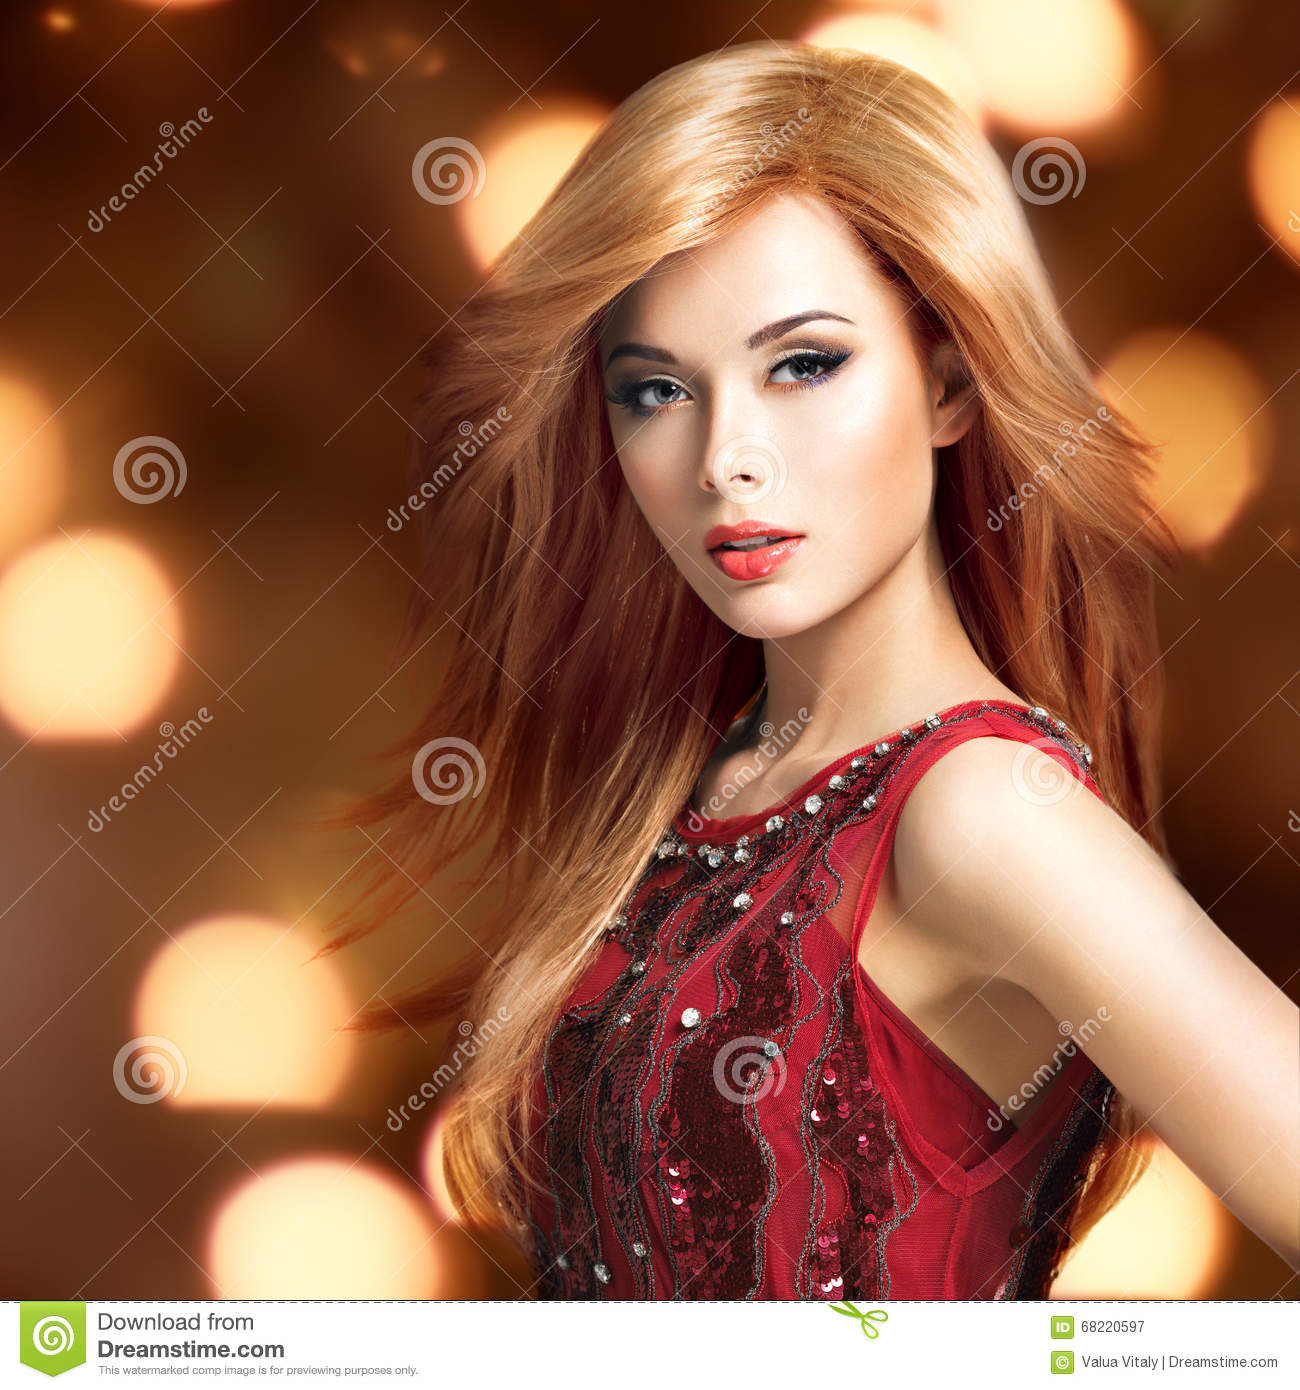 Beautiful blond woman with long hairstyle